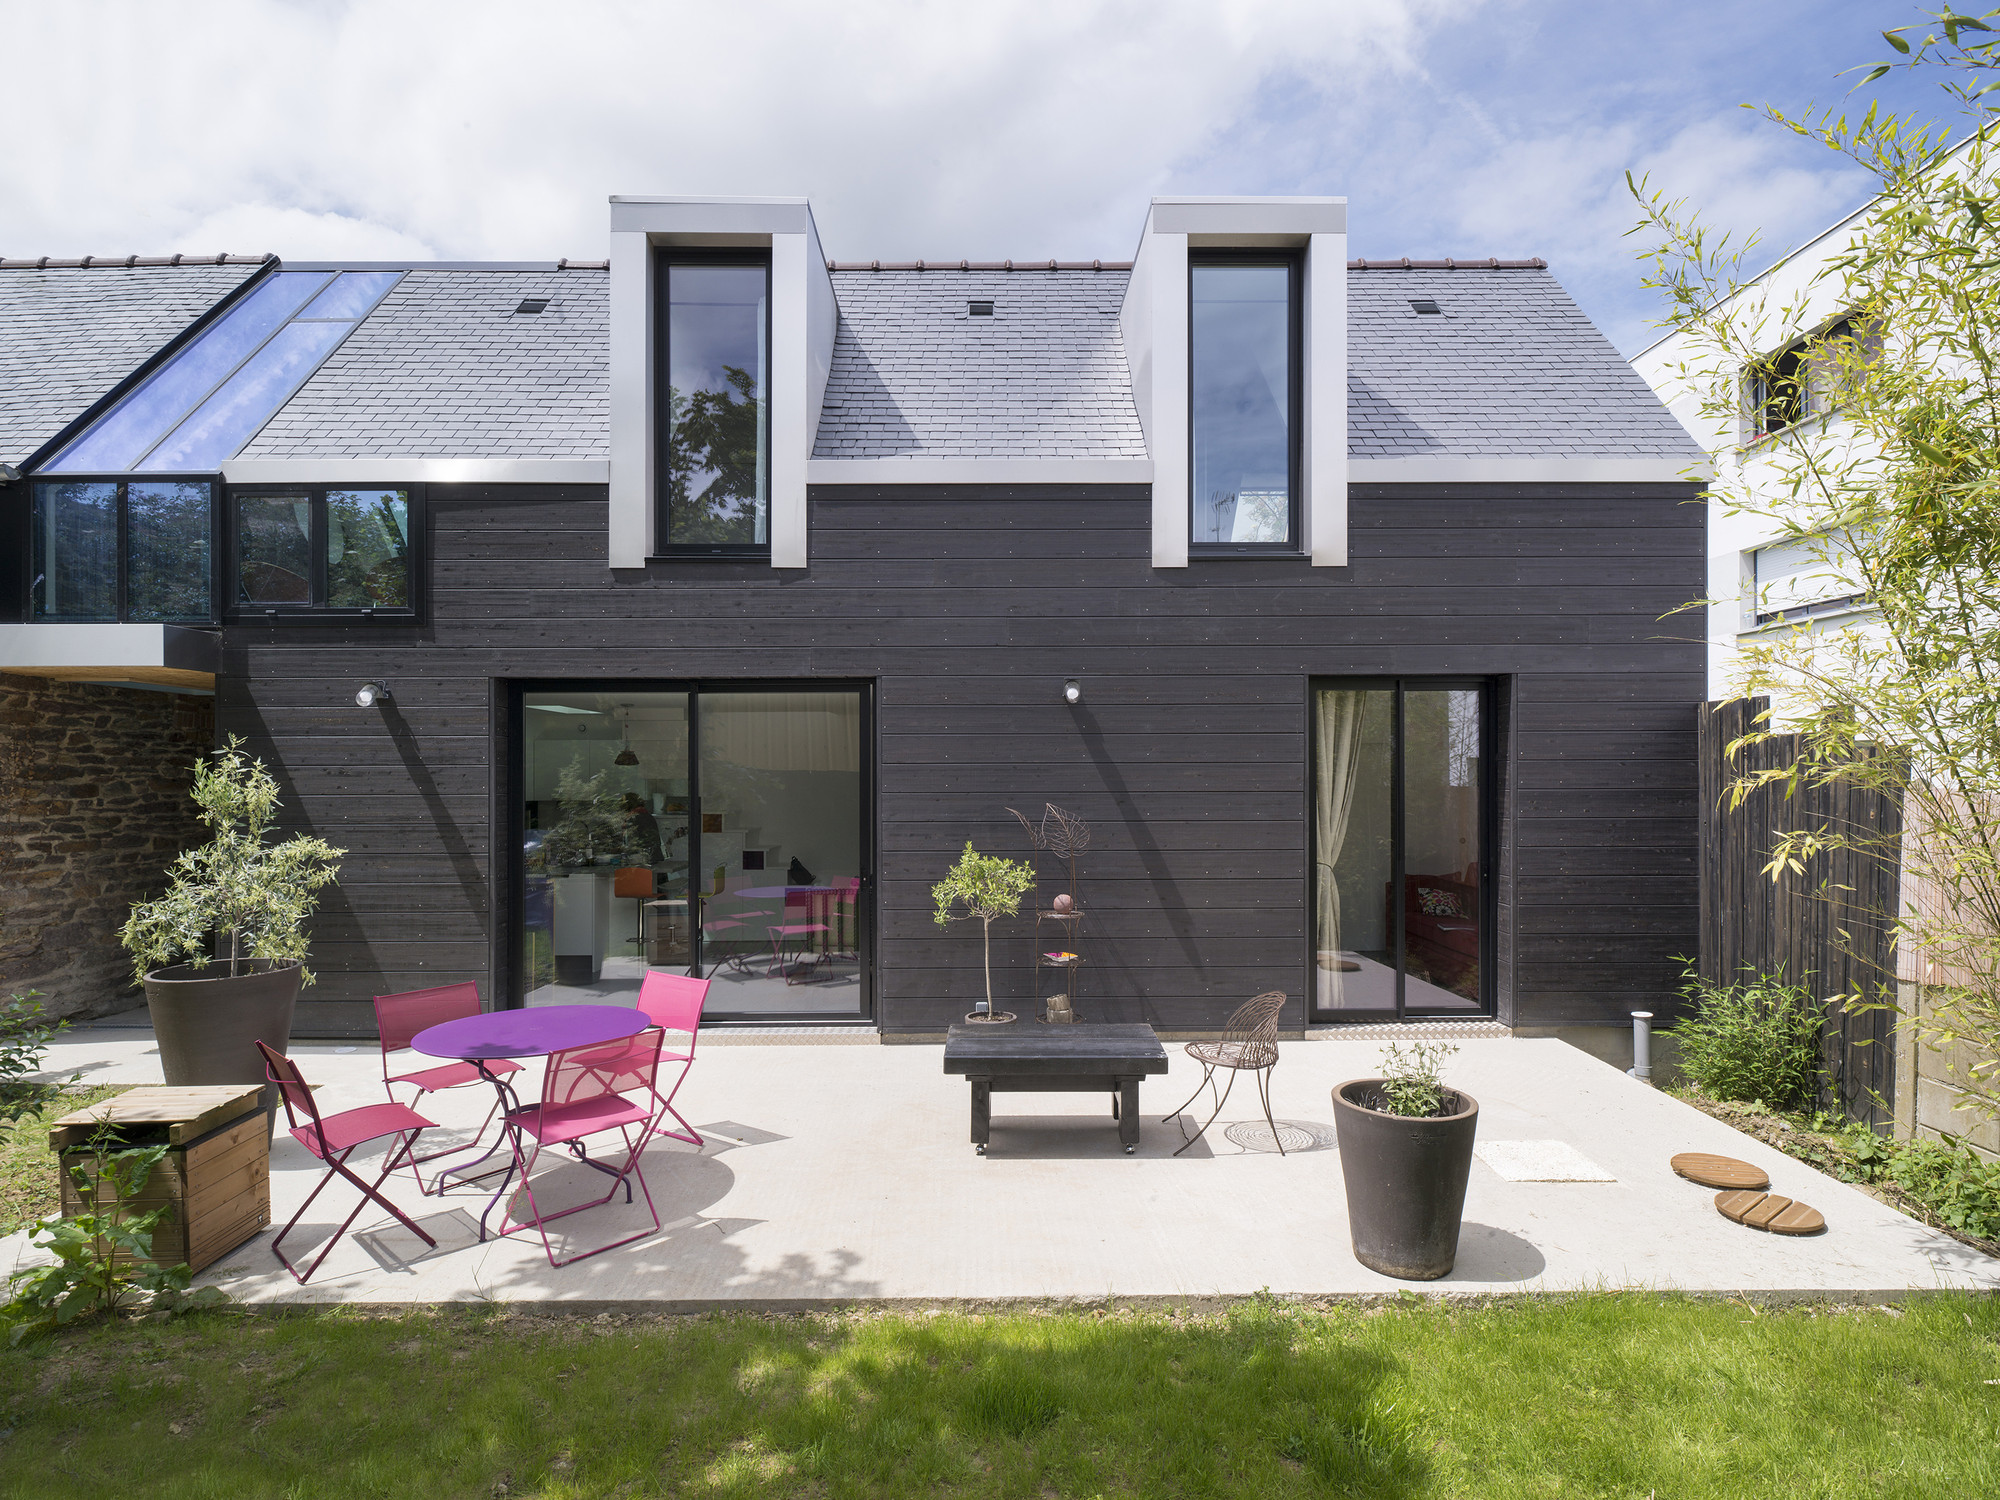 The House Between / Clément Bacle Architect, © Martin Argyroglo